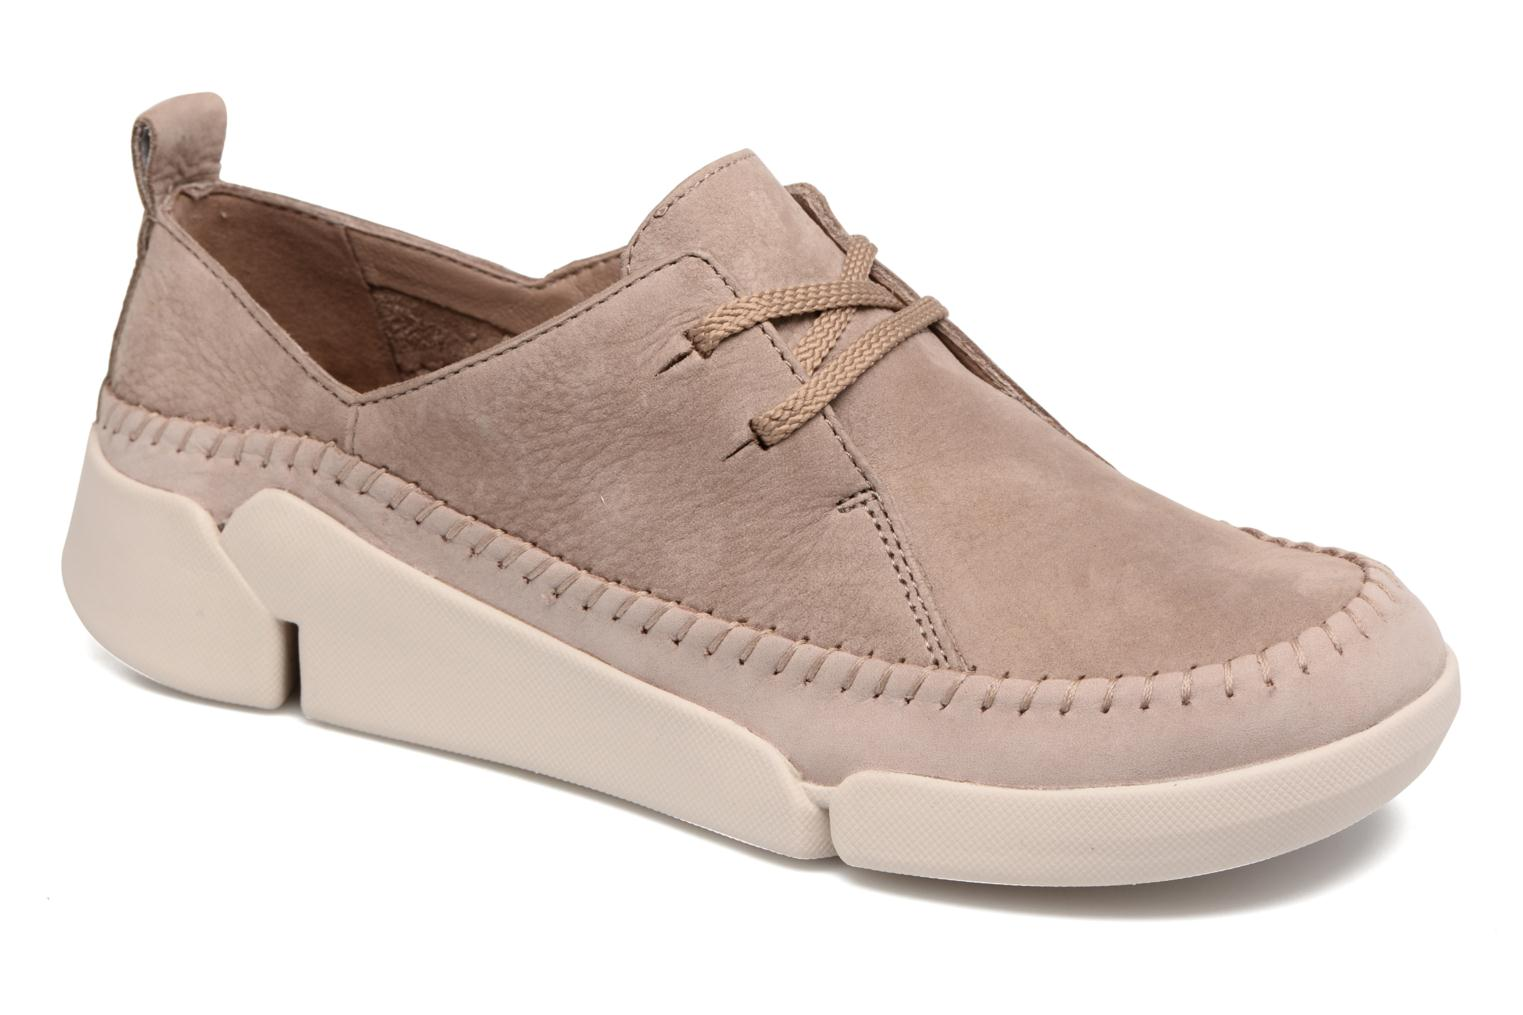 Clarks TRI ANGEL Chaussures Clarks Evat4CDOA soldes chets QdBxrCeoW